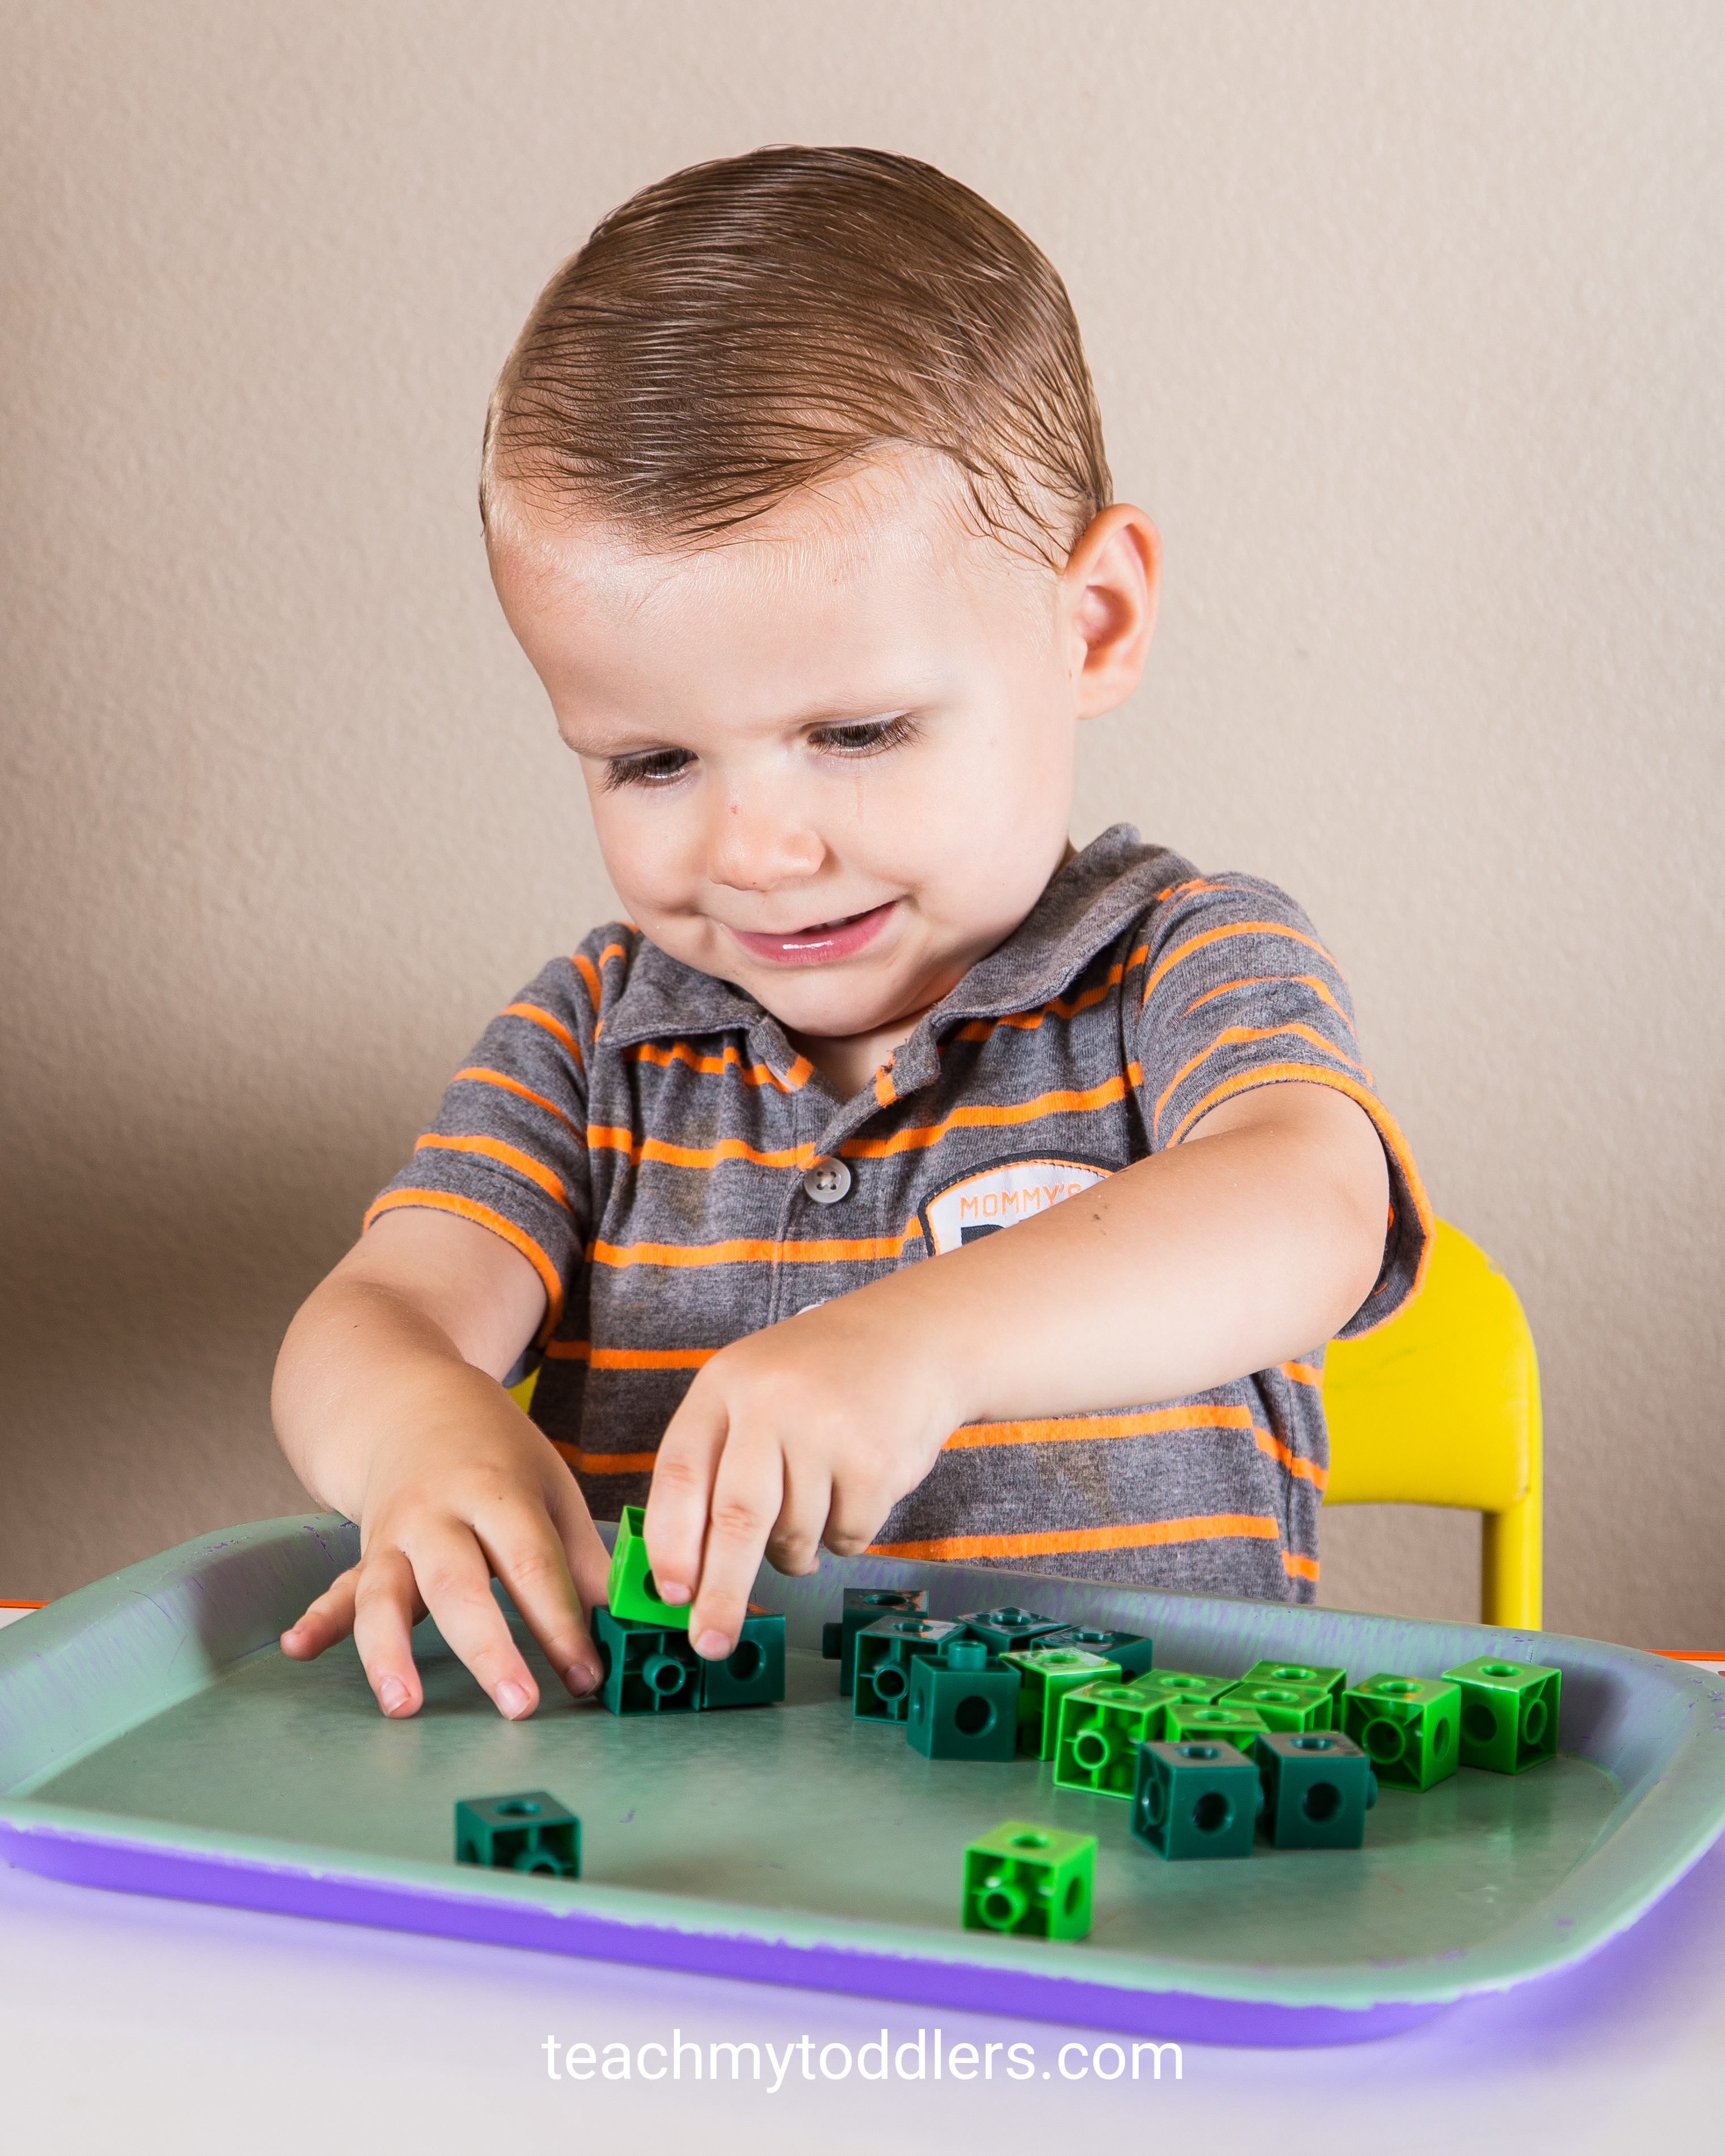 Learn how to teach your toddlers the color green with these tot tray activities